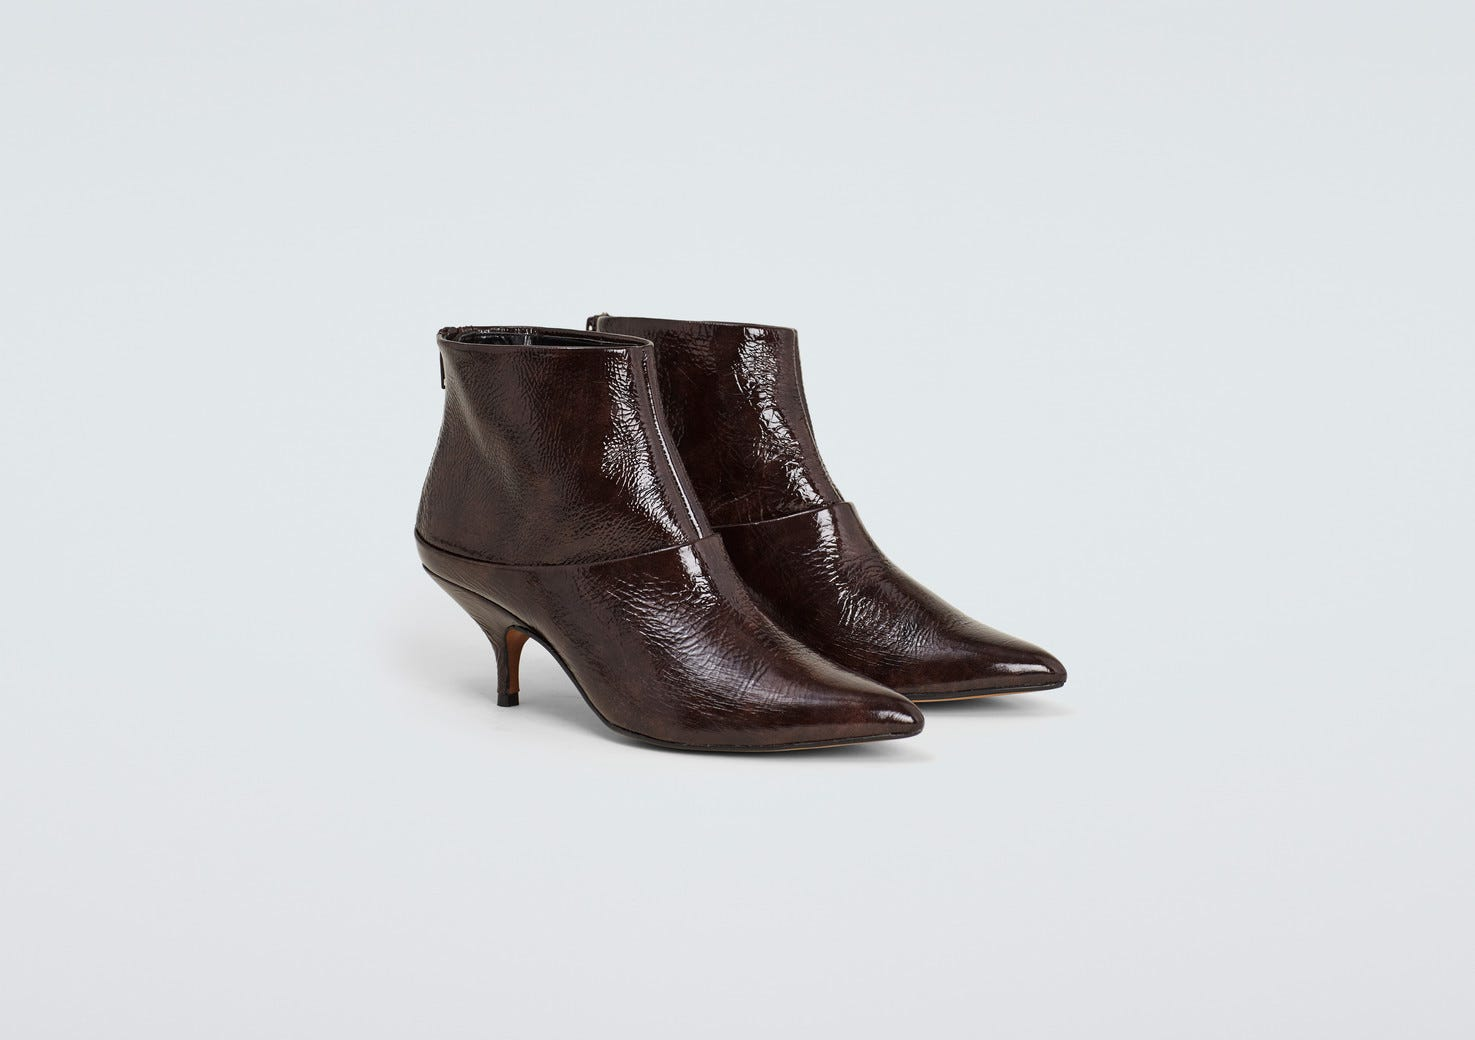 c8d0b10db6f Patty Mahogany Patent Leather Ankle Boot